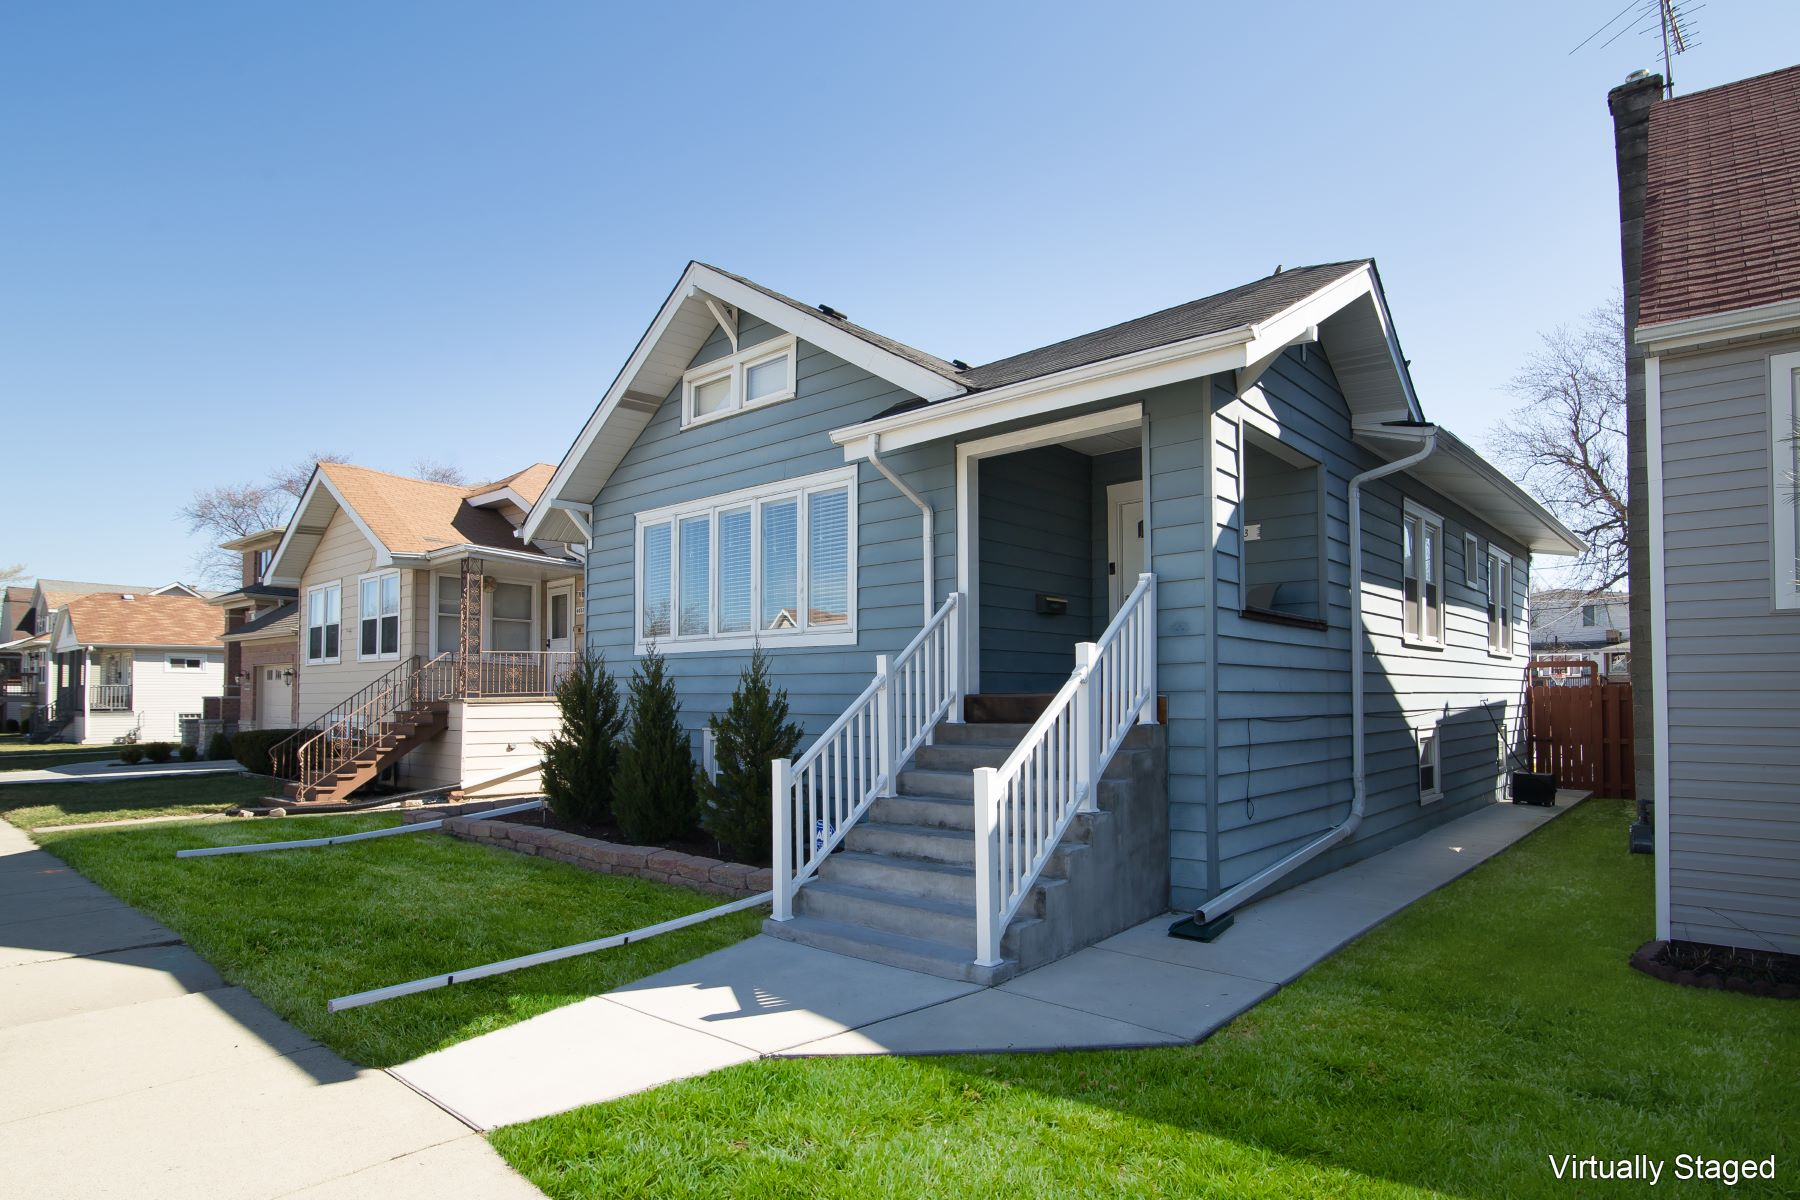 Single Family Home for Active at Luxury Living Meets Affordability 4033 N Ozark Avenue Norridge, Illinois 60706 United States